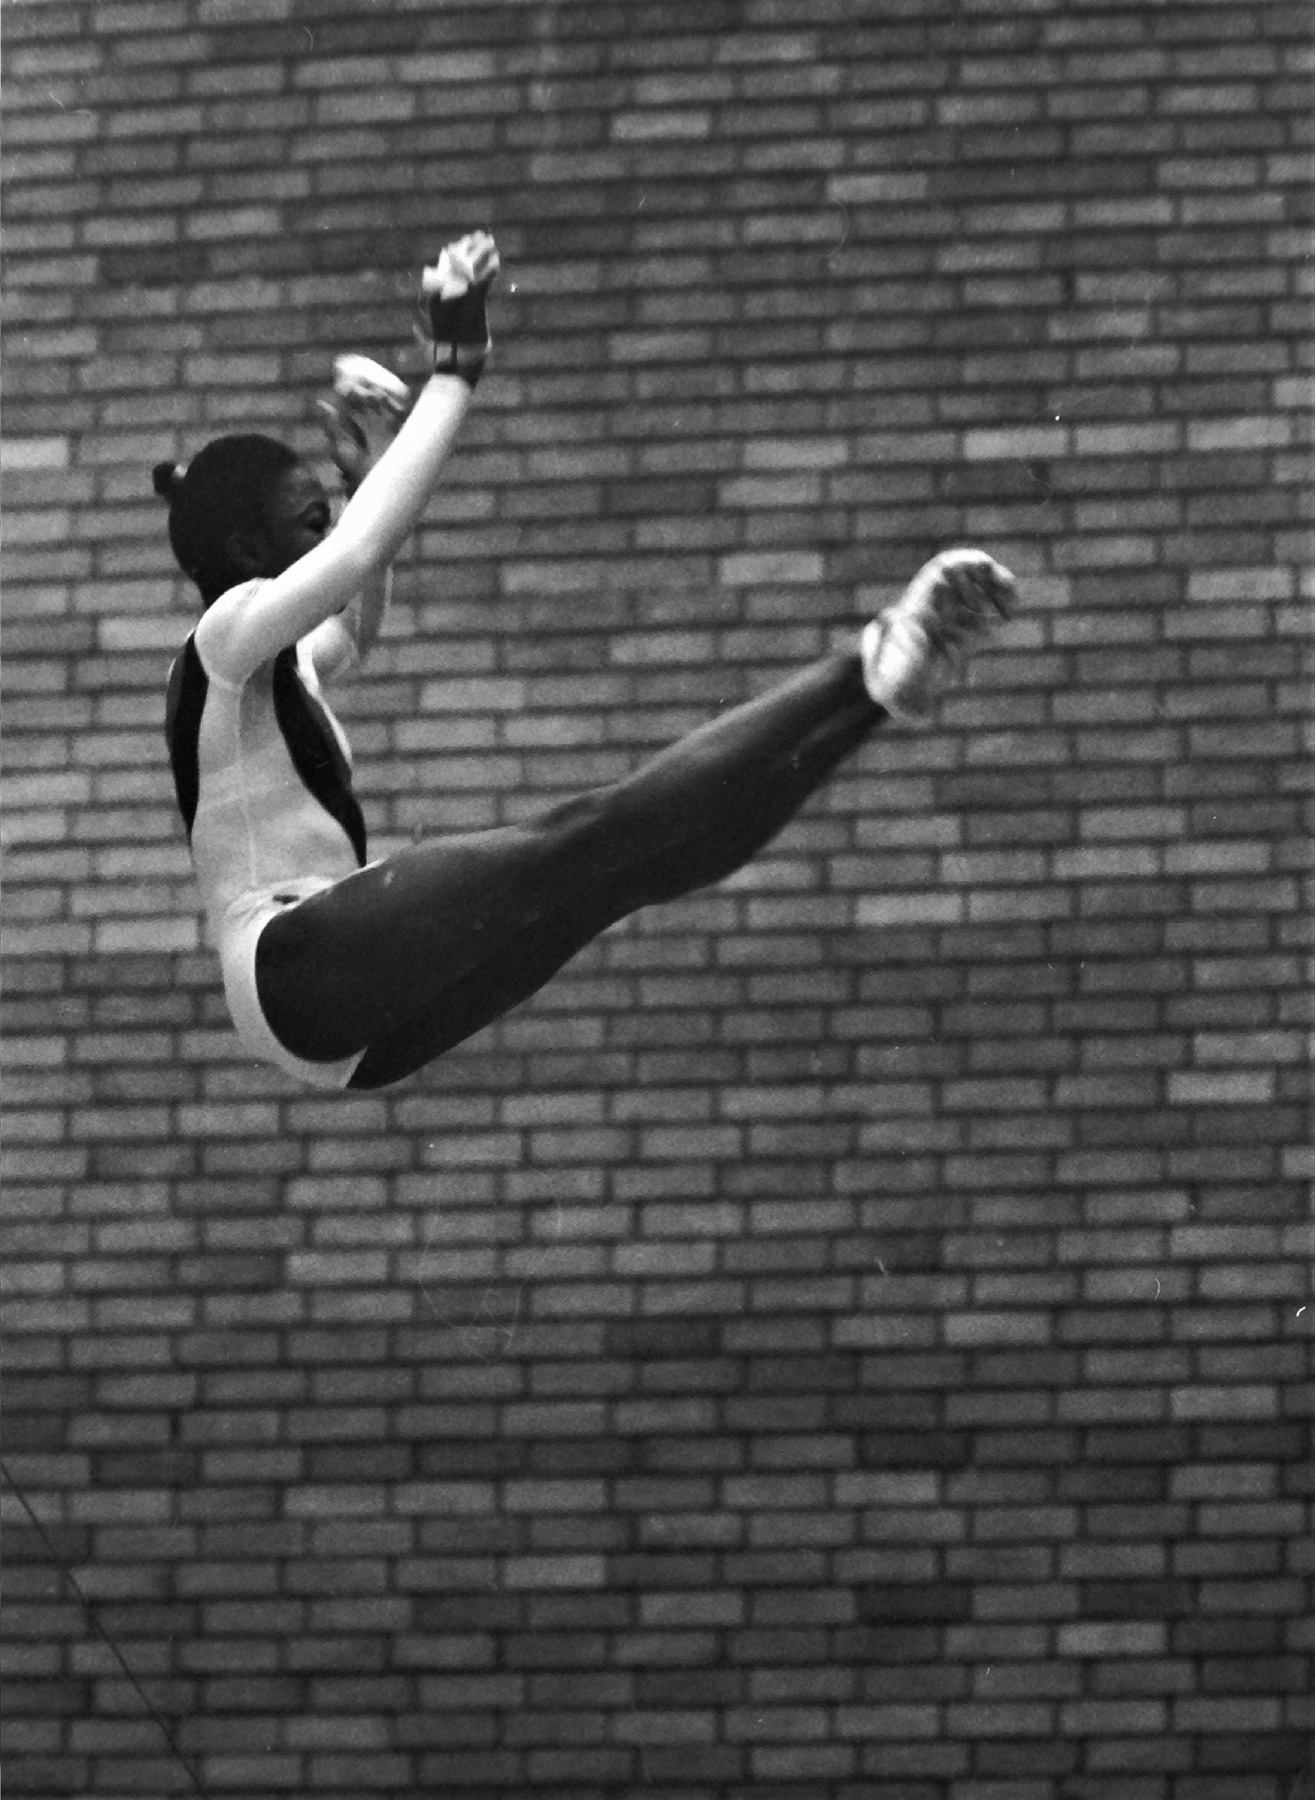 Williams Kathy competing on bars for GB against Romania in Huddersfield in November 1979 - photo Alan Burrows